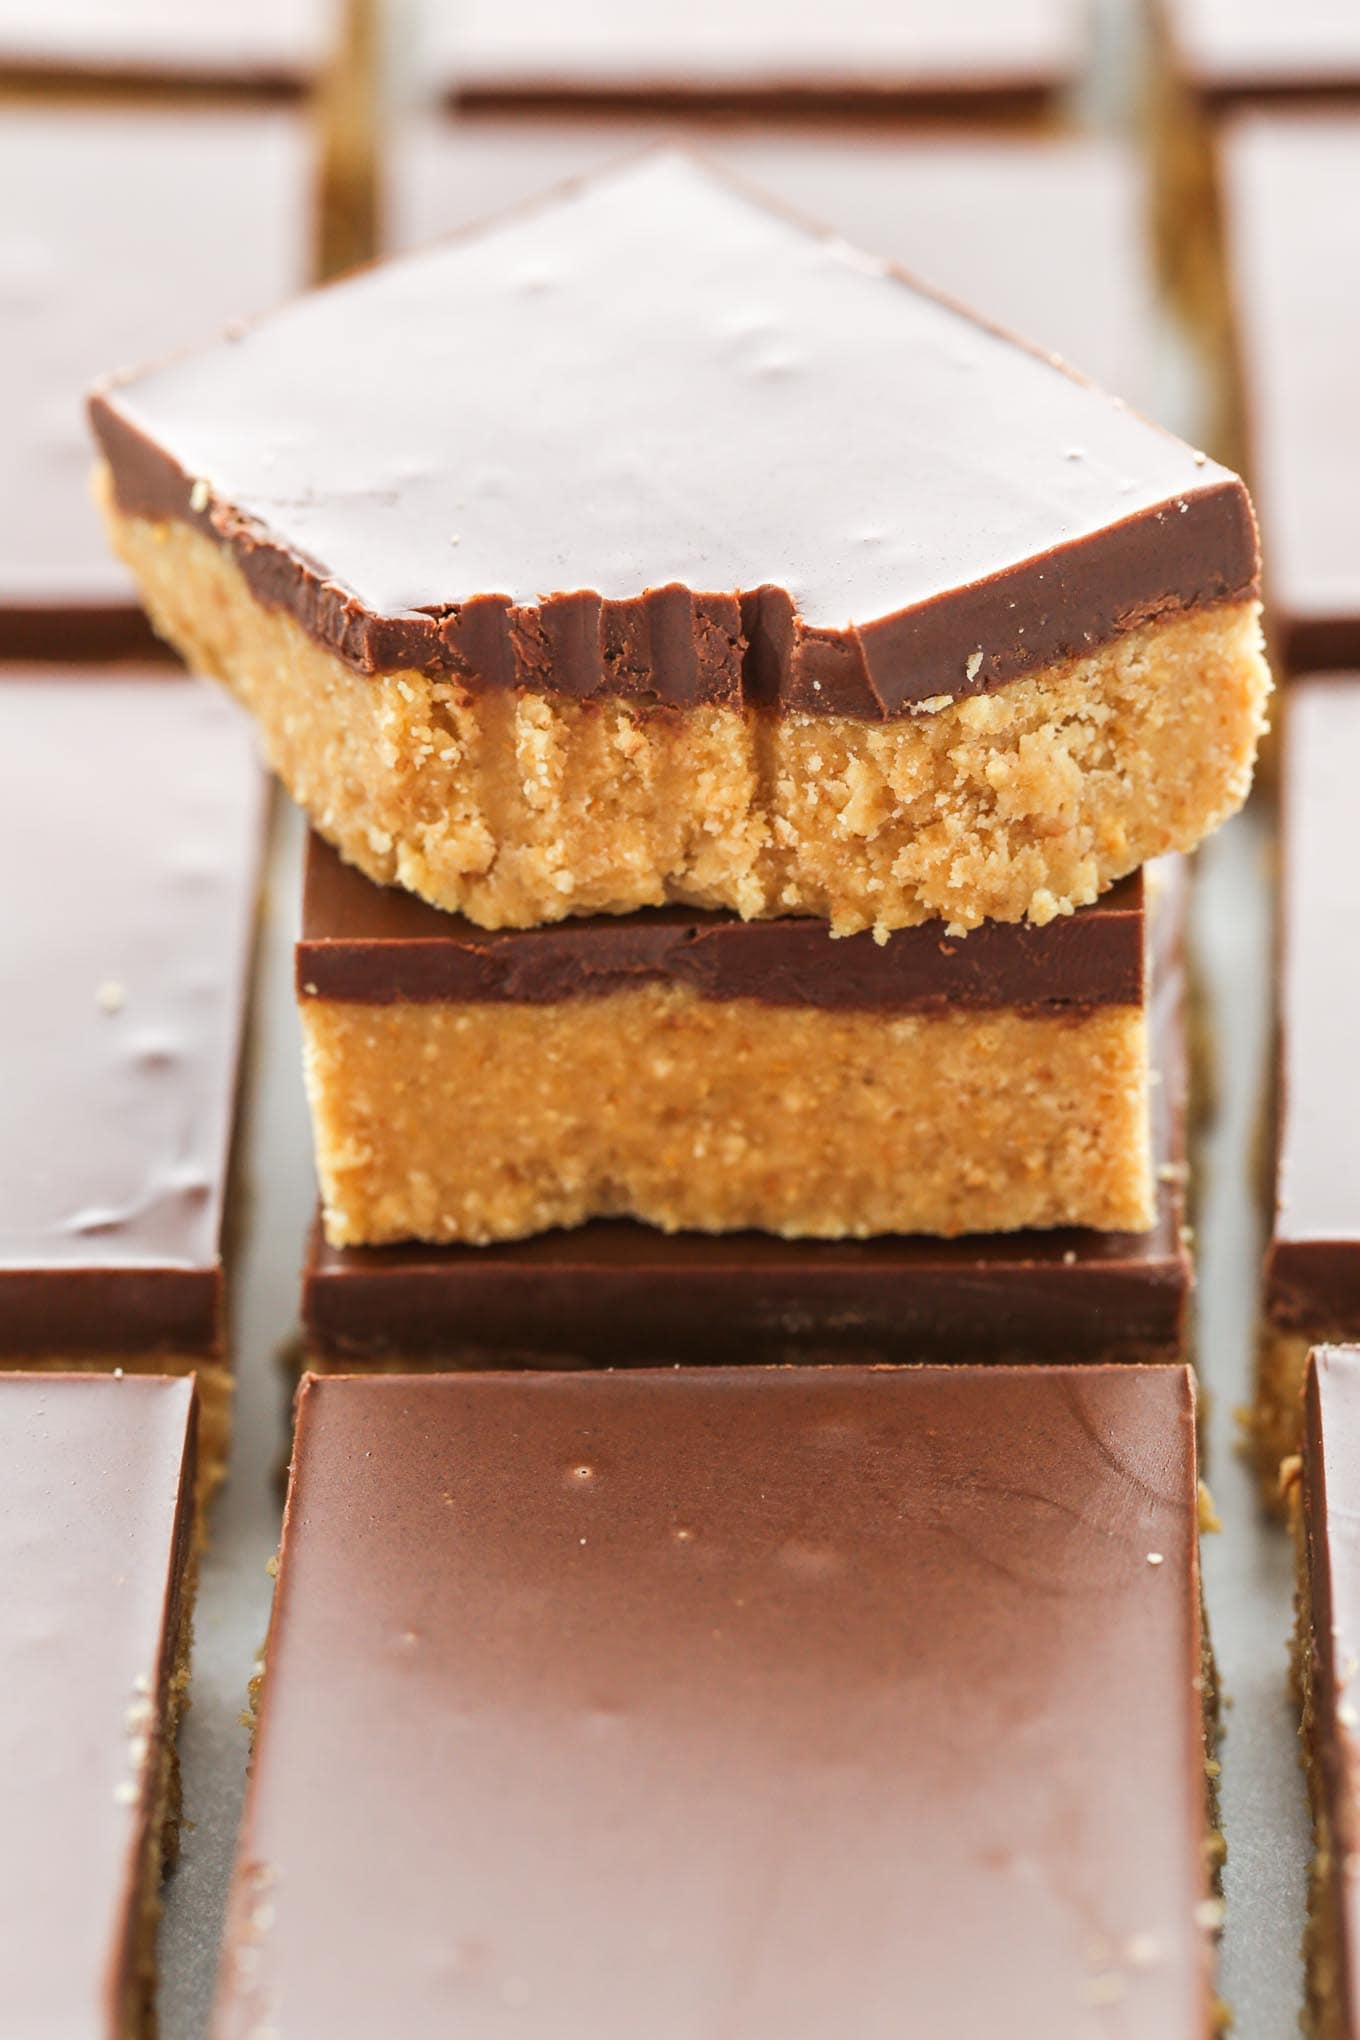 These No-Bake Chocolate Peanut Butter Bars only require 5 simple ingredients and can be prepared in about 10 minutes. The perfect easy dessert for chocolate and peanut butter lovers!